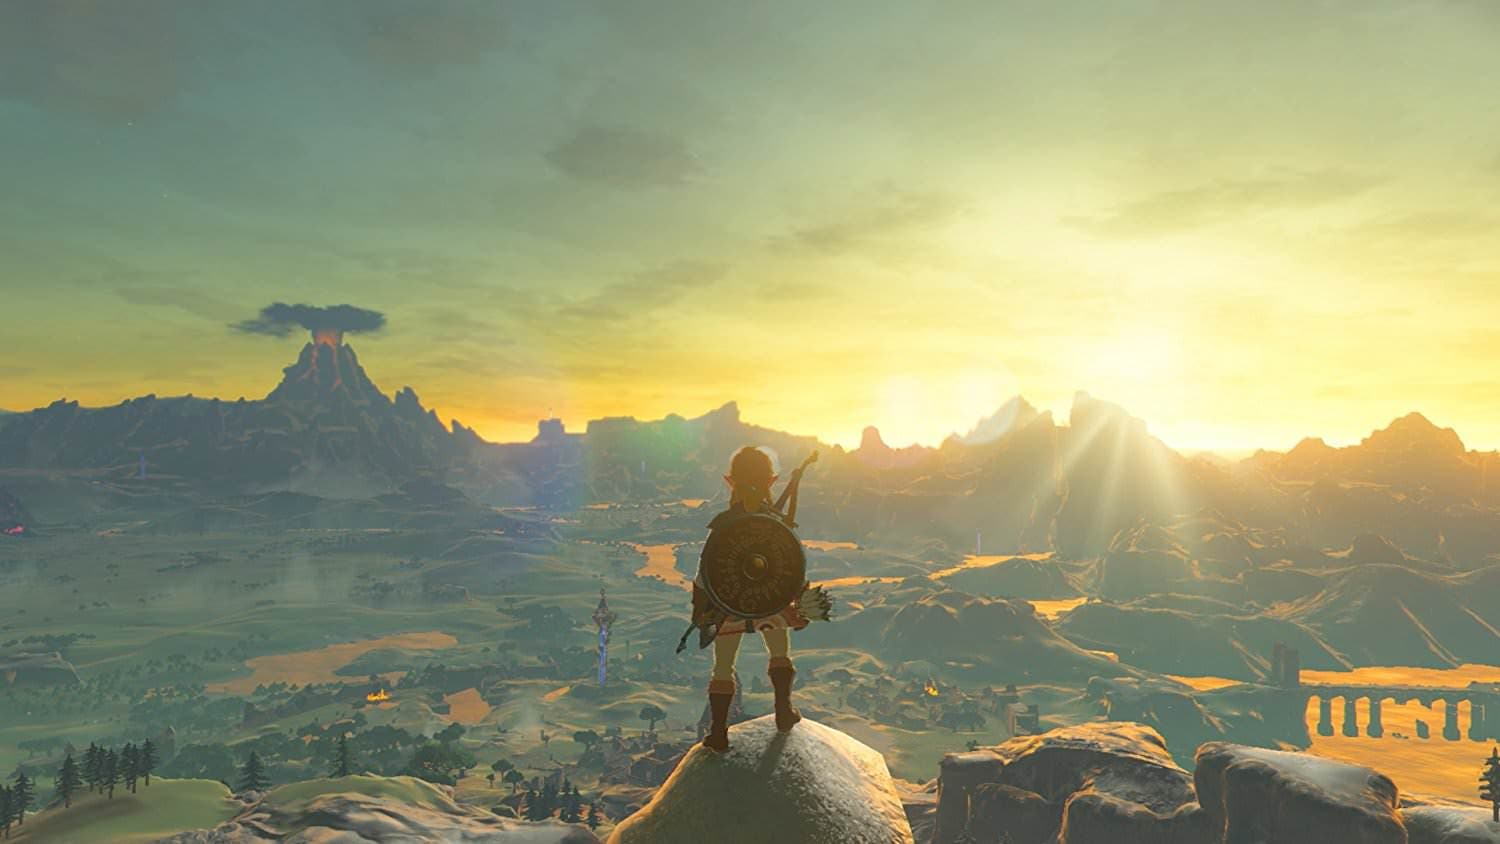 Reclama estos wallpapers de Zelda: Breath of the Wild y Snipperclips y recibe 100 Puntos